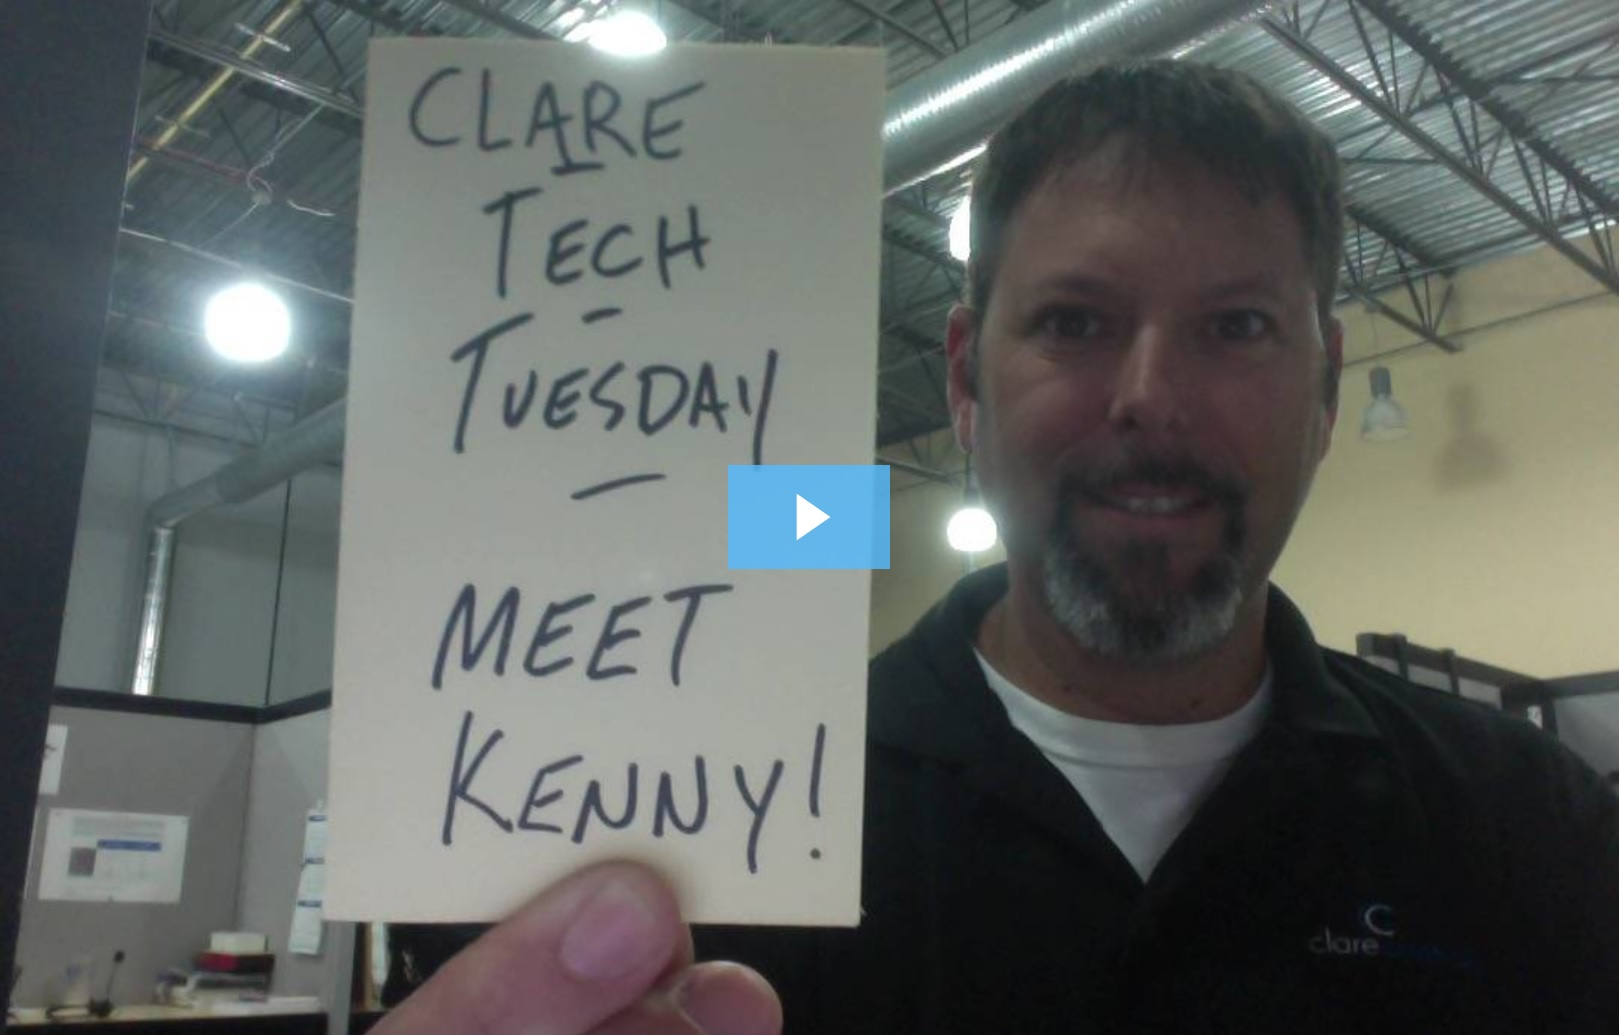 Clare Tech Tuesday: Business Discussion: Introducing Kenny